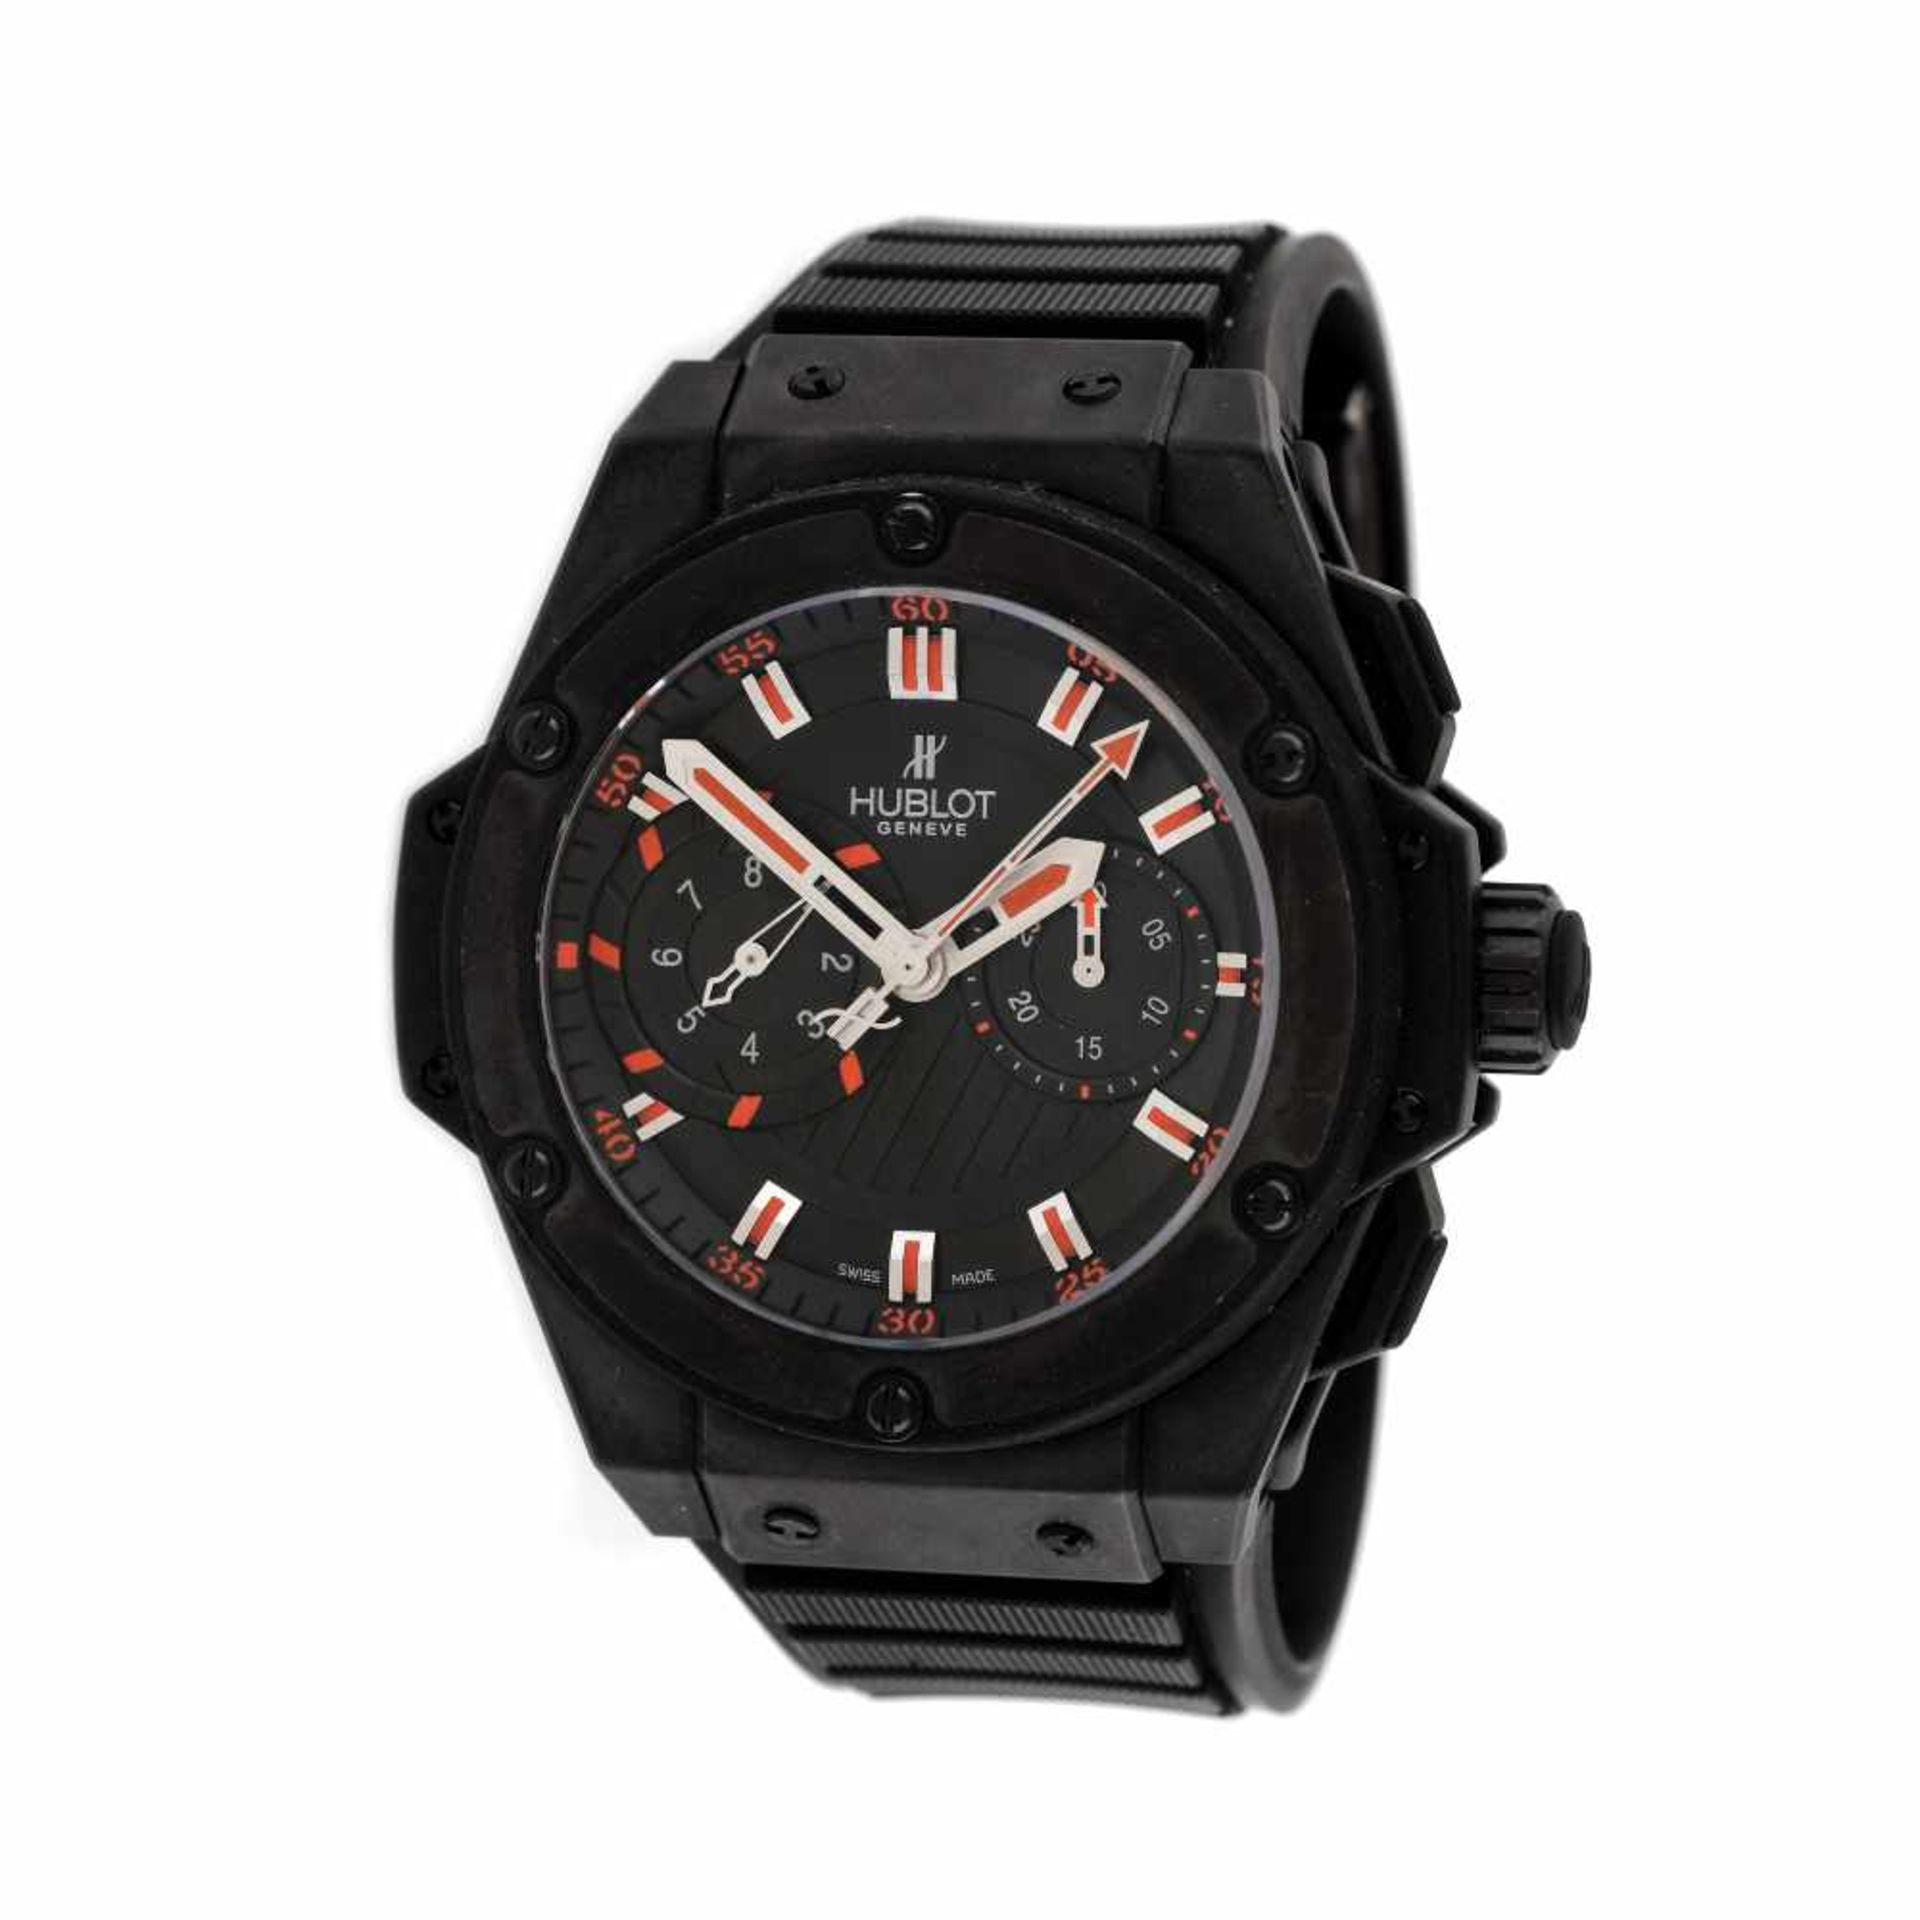 Hublot King Power wristwatch, ceramic, men, limited edition 301/500, provenance documents